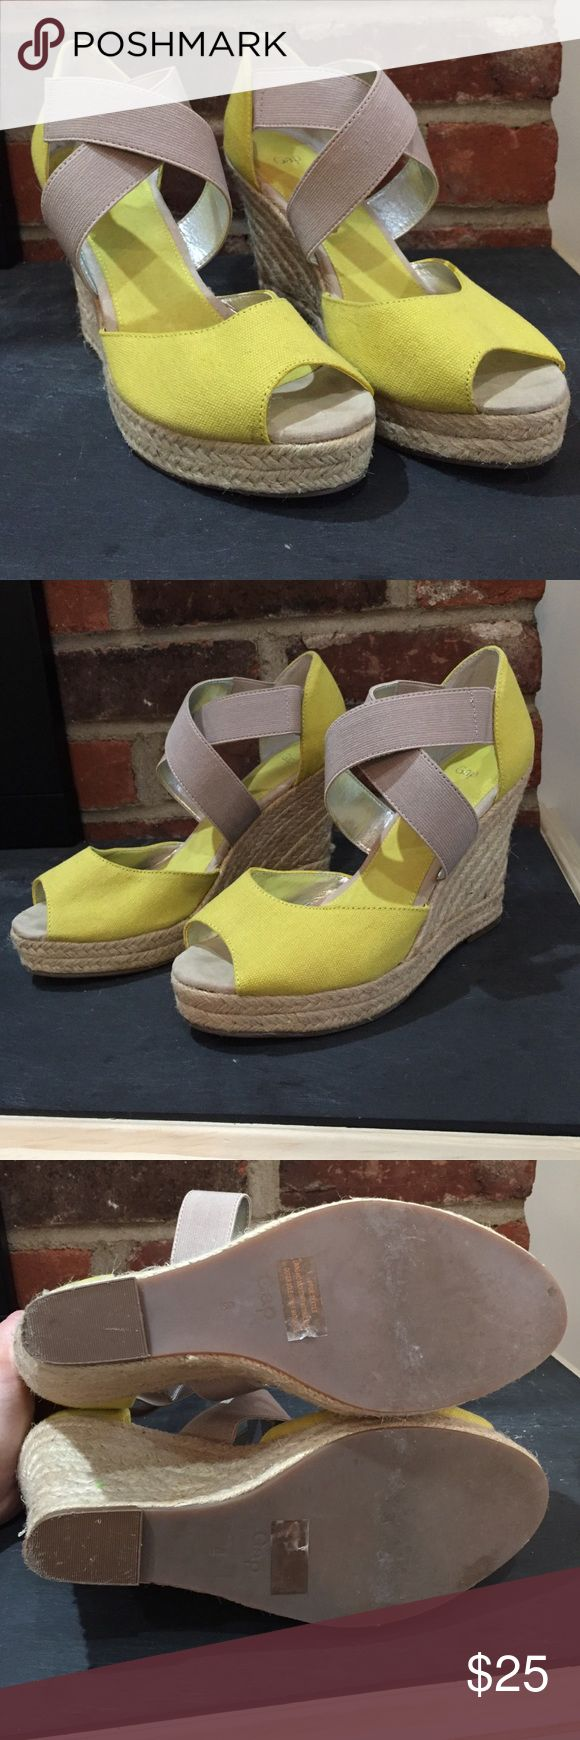 Gap size 8 yellow espadrilles In great used condition, size 8 from the Gap. Braided 4 inch wedge heel. GAP Shoes Espadrilles